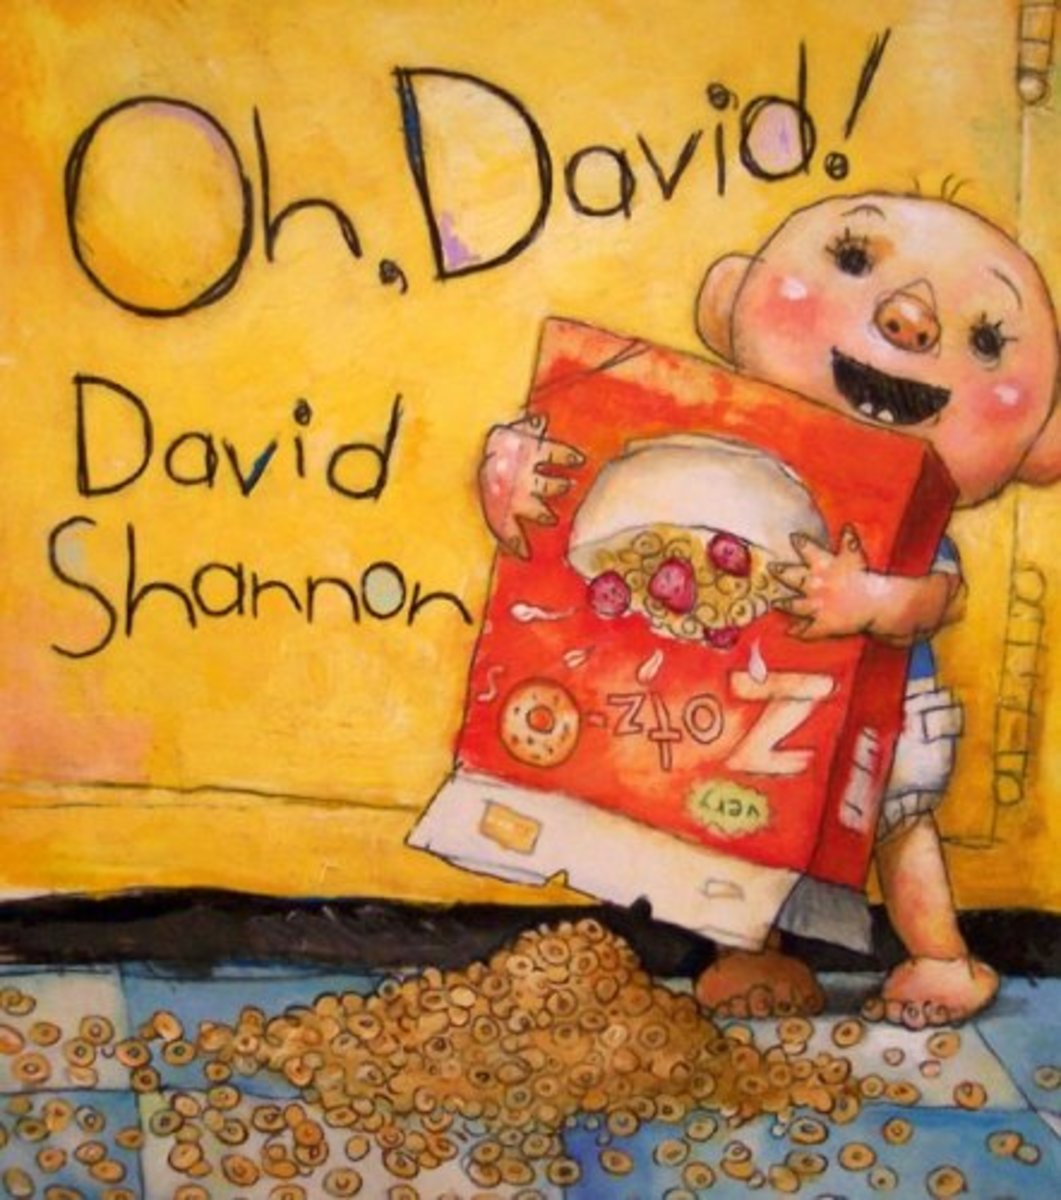 Oh David by David Shannon